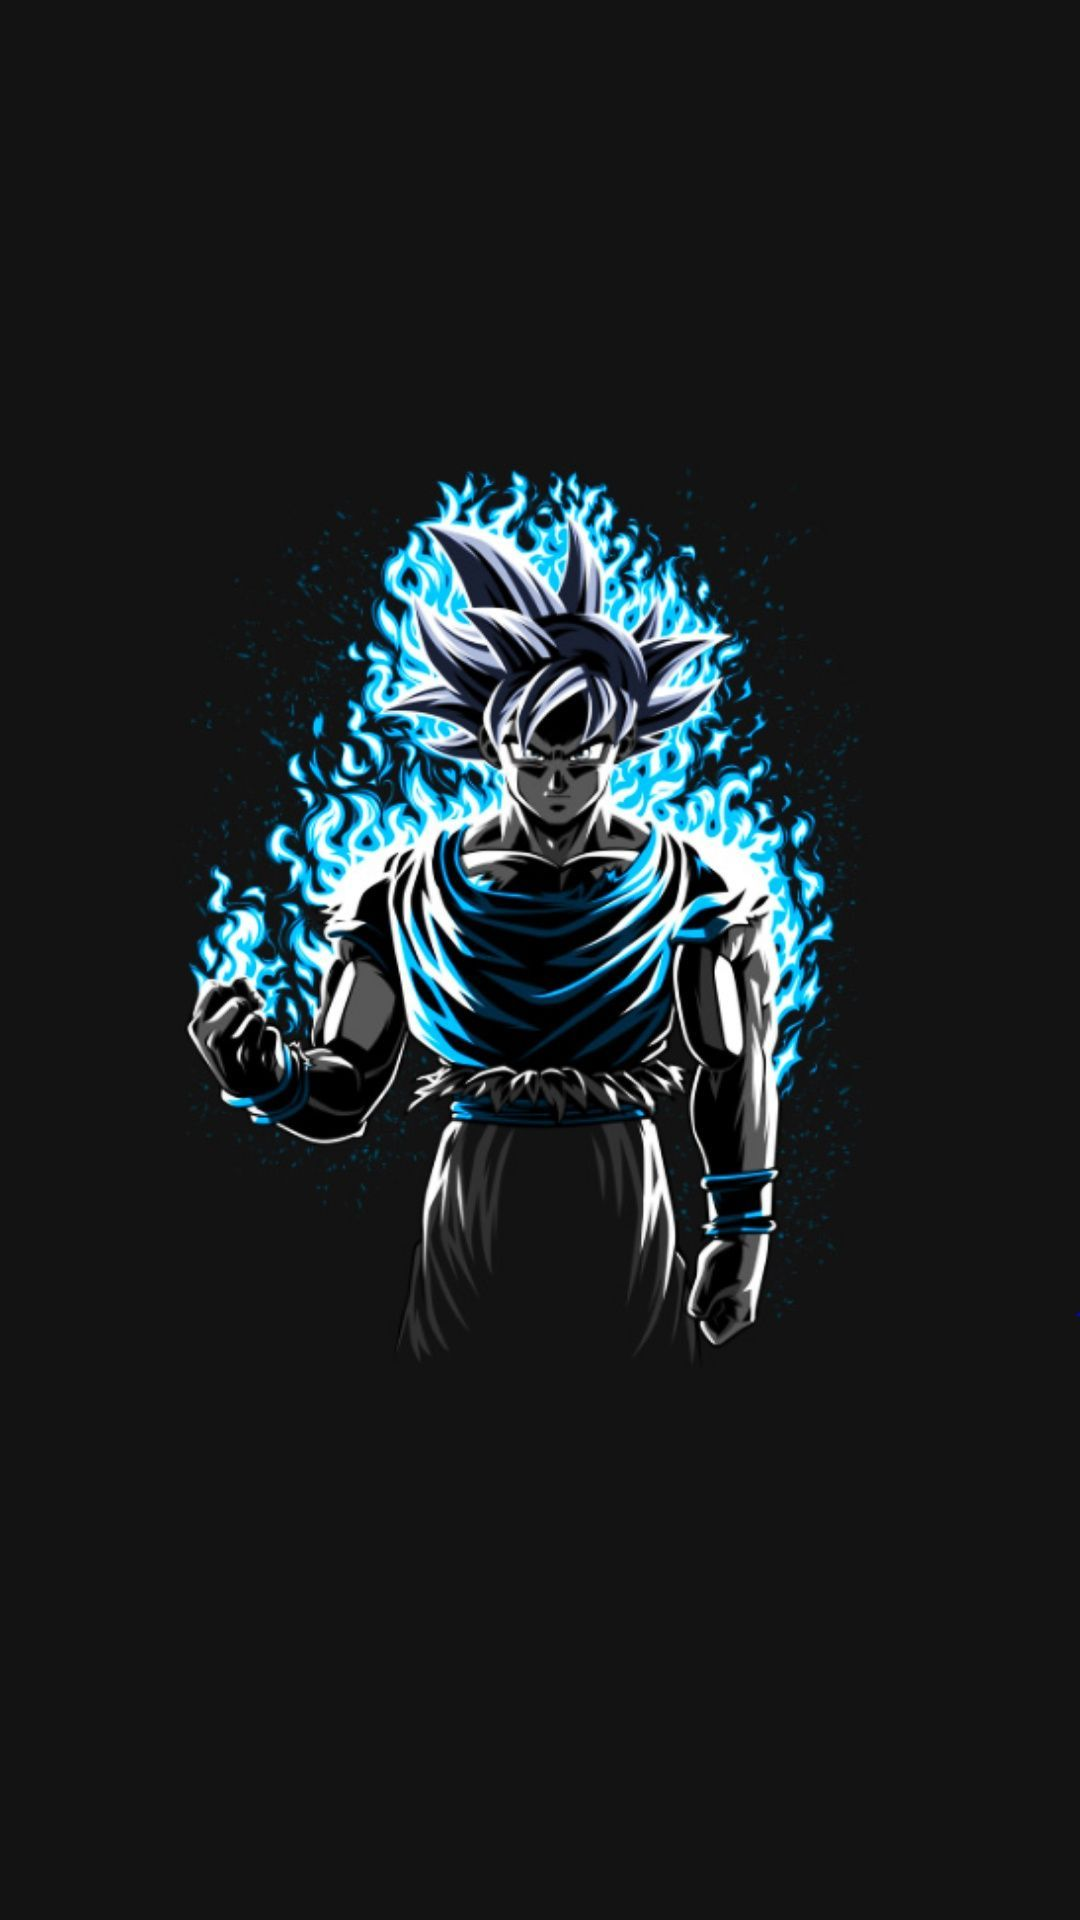 Super Amoled Wallpaper Anime Mywallpapers Site In 2020 Dragon Ball Art Dragon Ball Artwork Dragon Ball Wallpapers